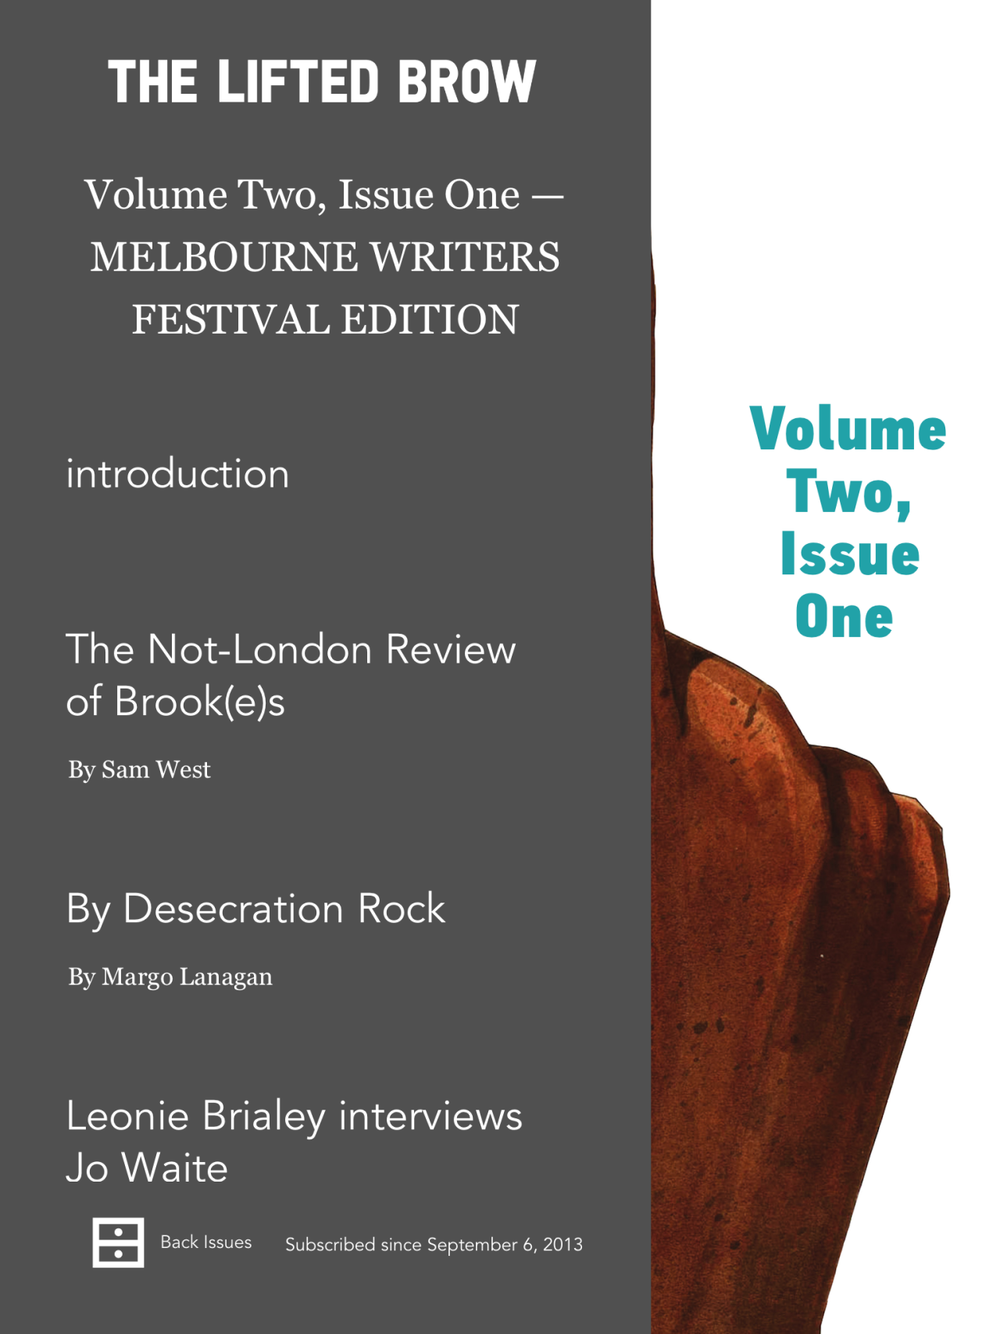 The new update of the digital Brow is here! If you're a subscriber then you've already received it; if you're not, then what are you doing. This edition features a pick of the pieces from our Melbourne Writers Festival themed print issue. It's ridiculously good stuff!